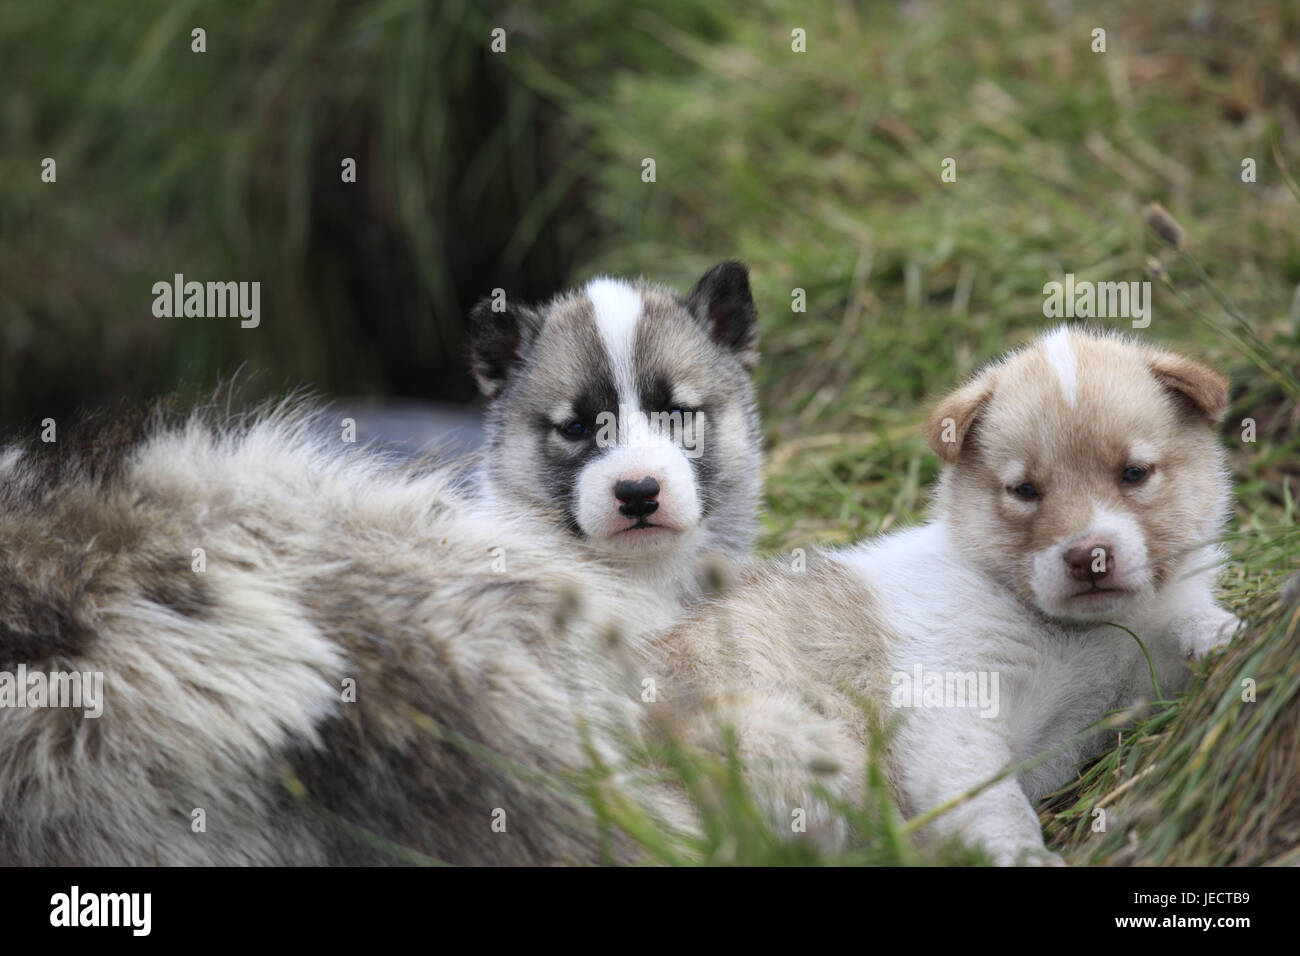 Dogs And Puppies Stock Photos & Dogs And Puppies Stock